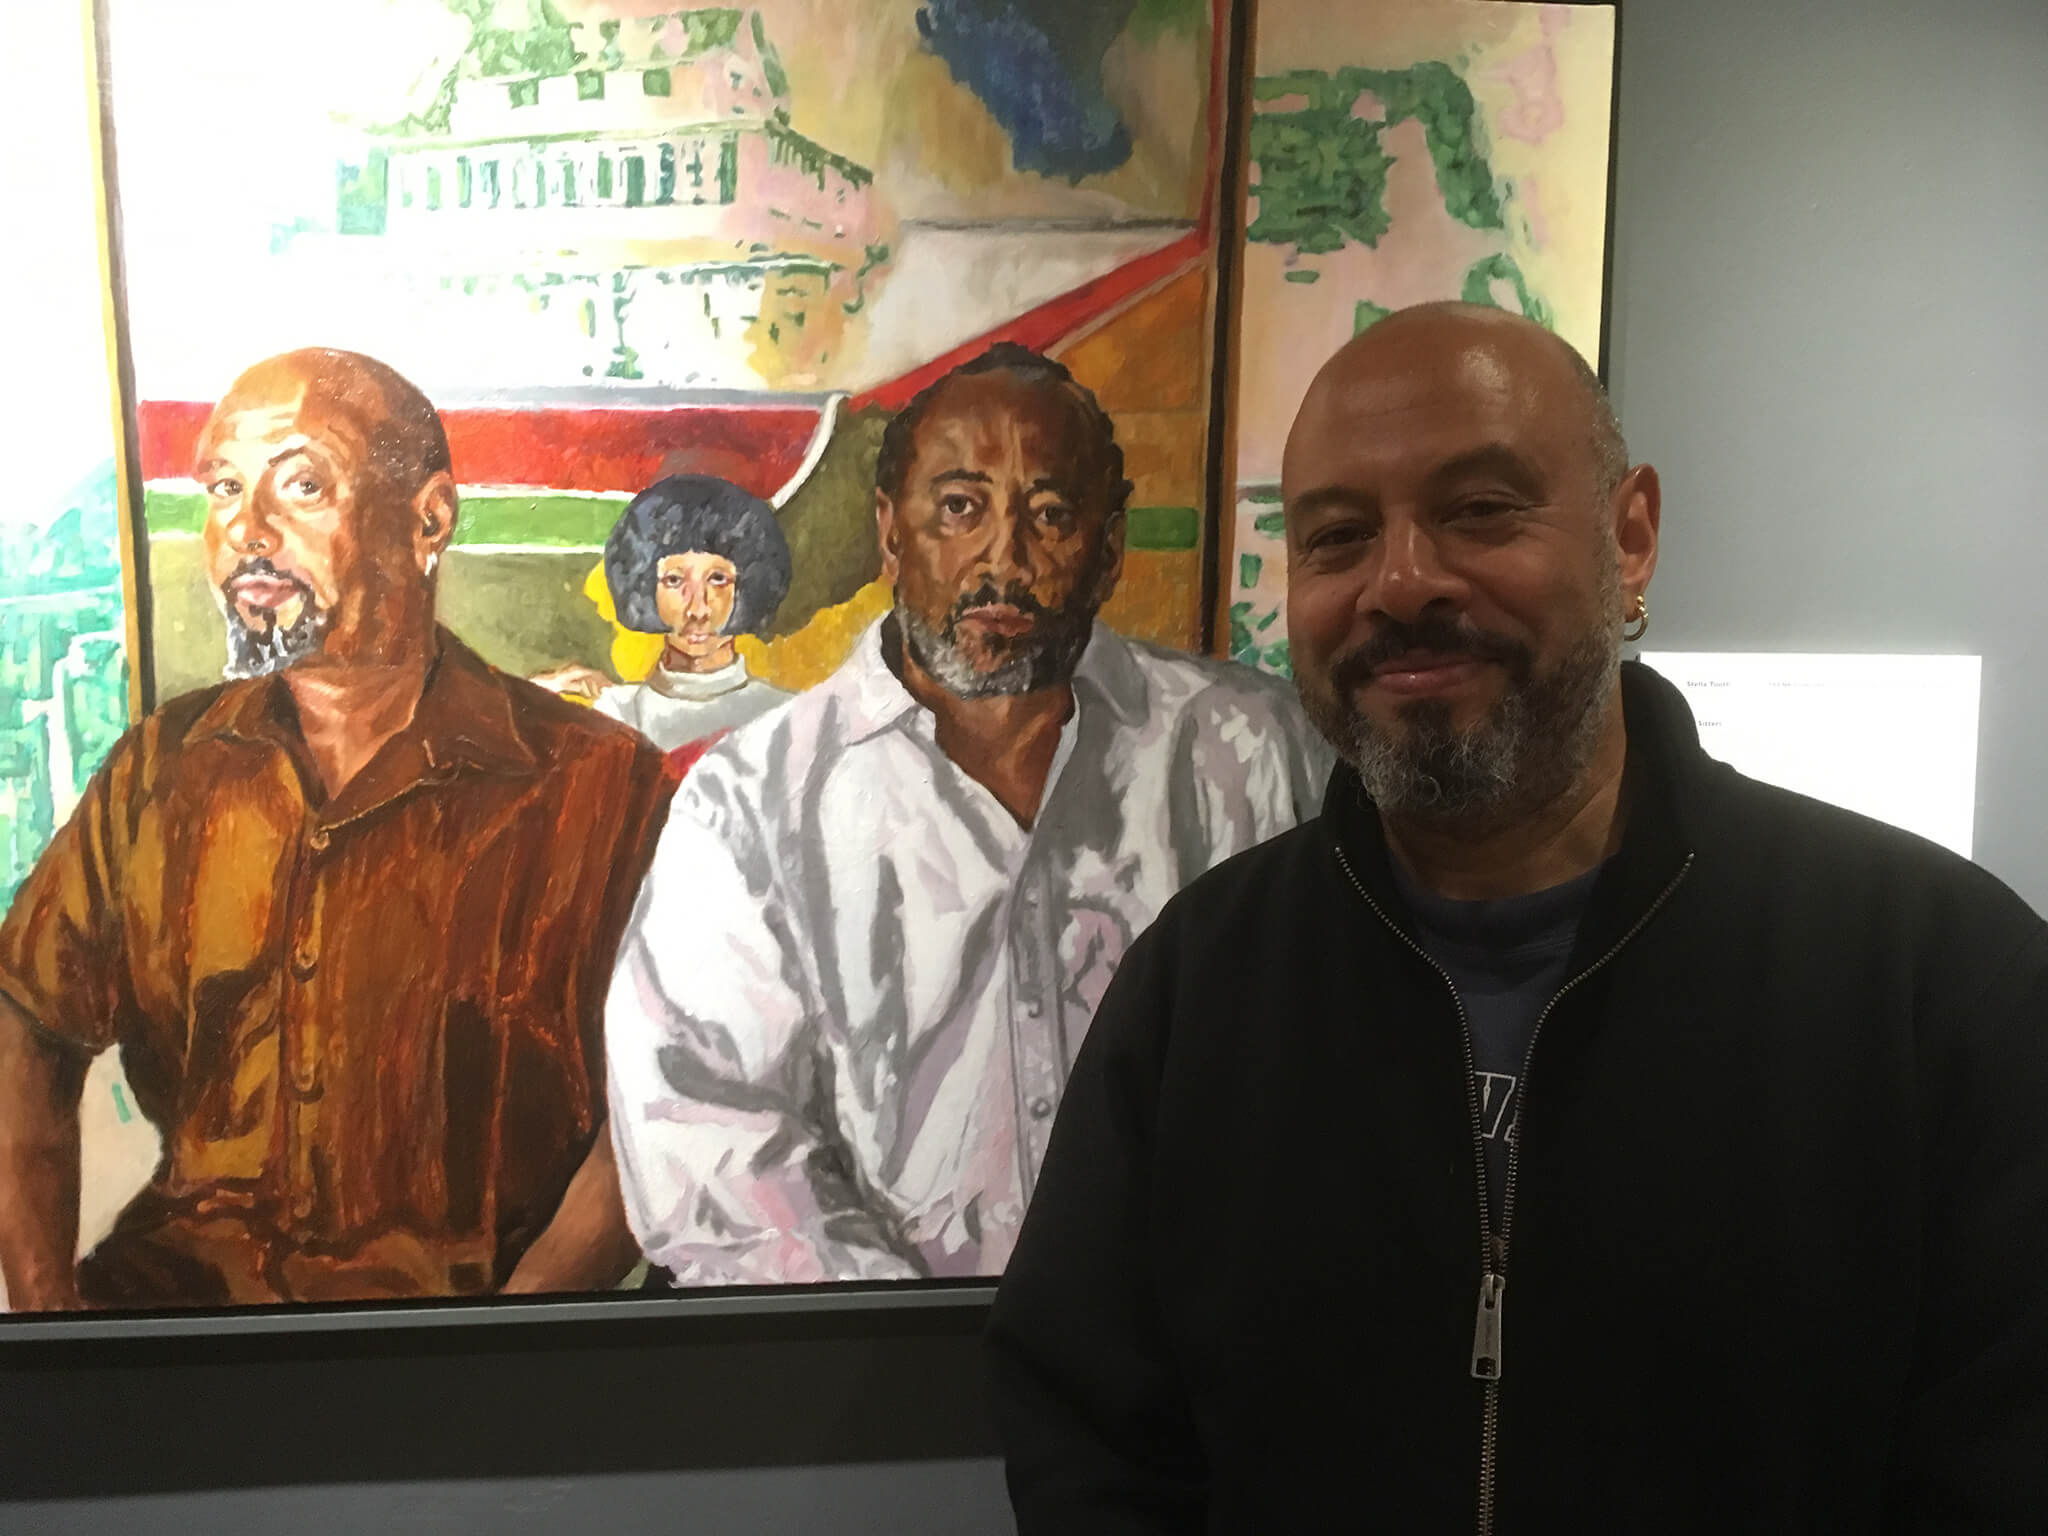 Ben with Stella Tooth's portrait of him and brother Sacha with father Frank Bowling's Cover Girl painting.